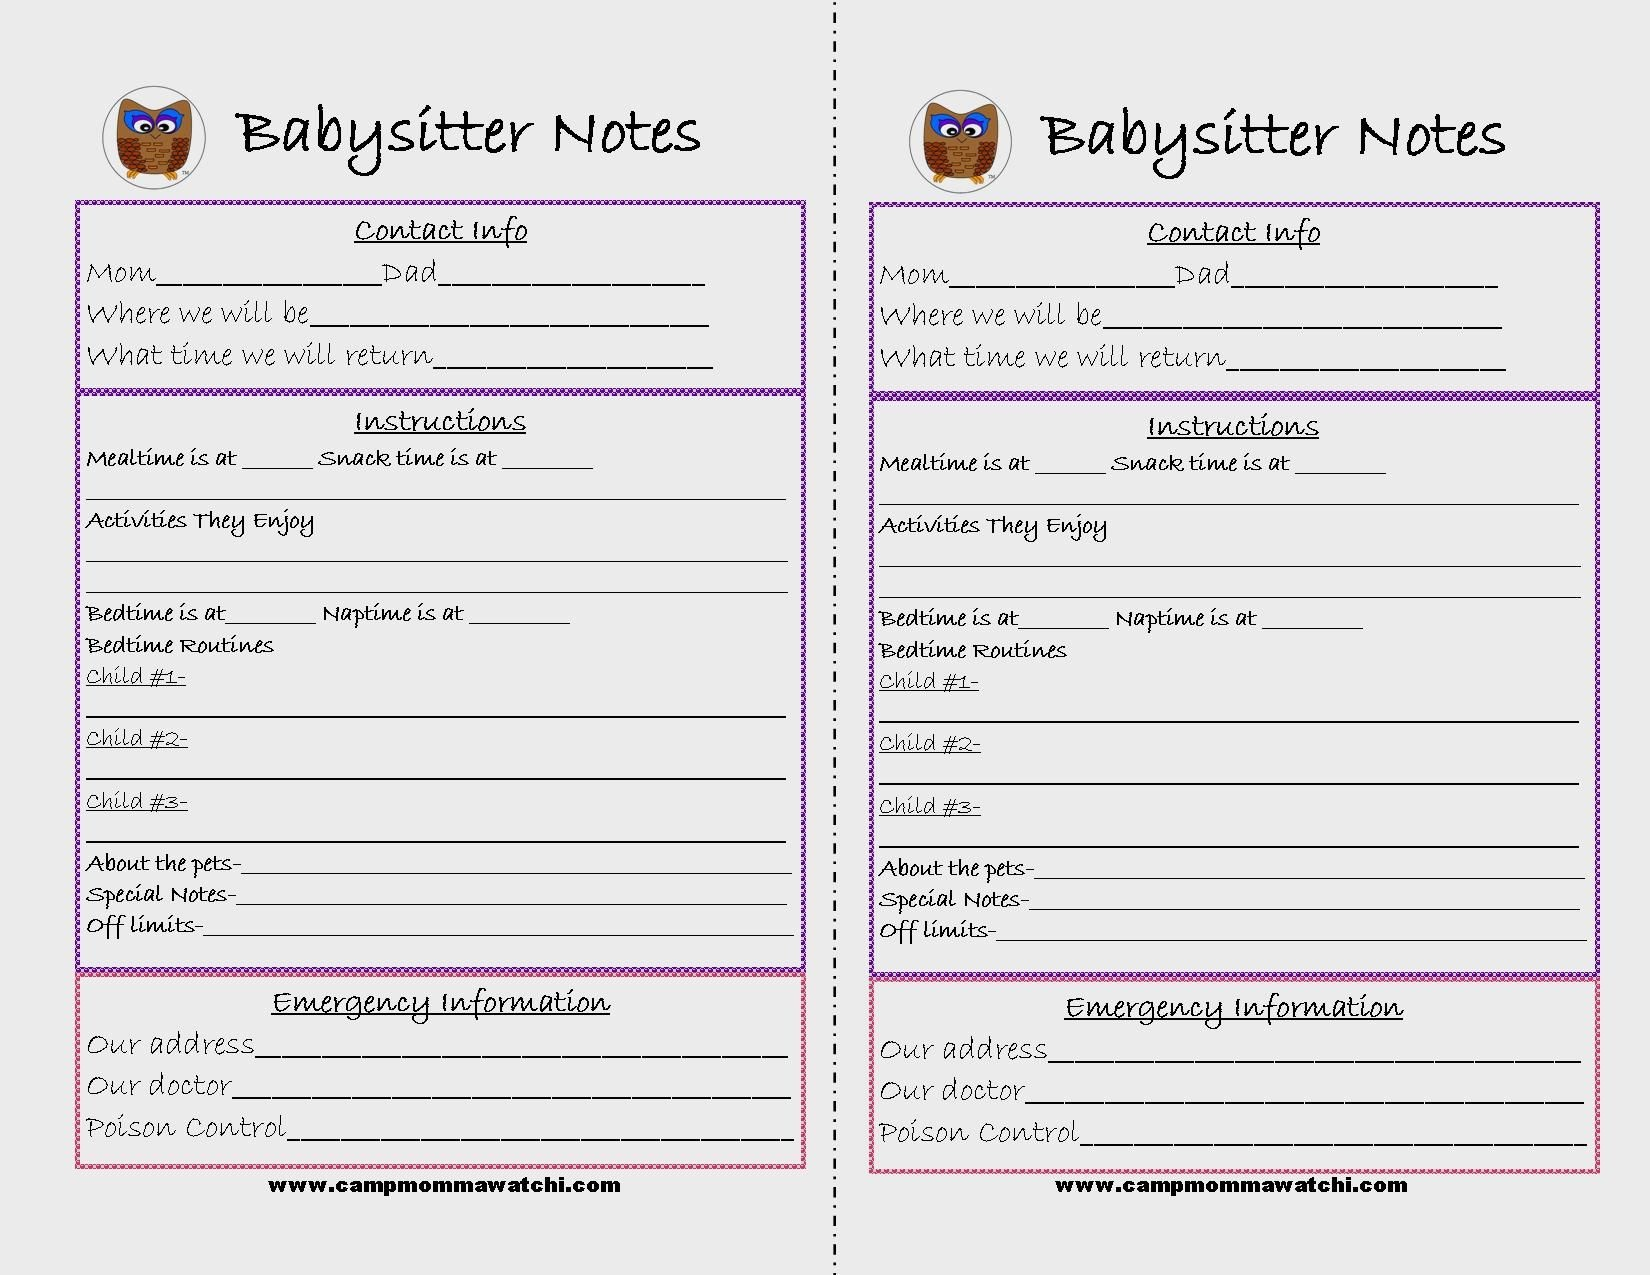 Free Printable Babysitter Notes | Camp Mommawatchi | Crafts And - Babysitter Notes Free Printable